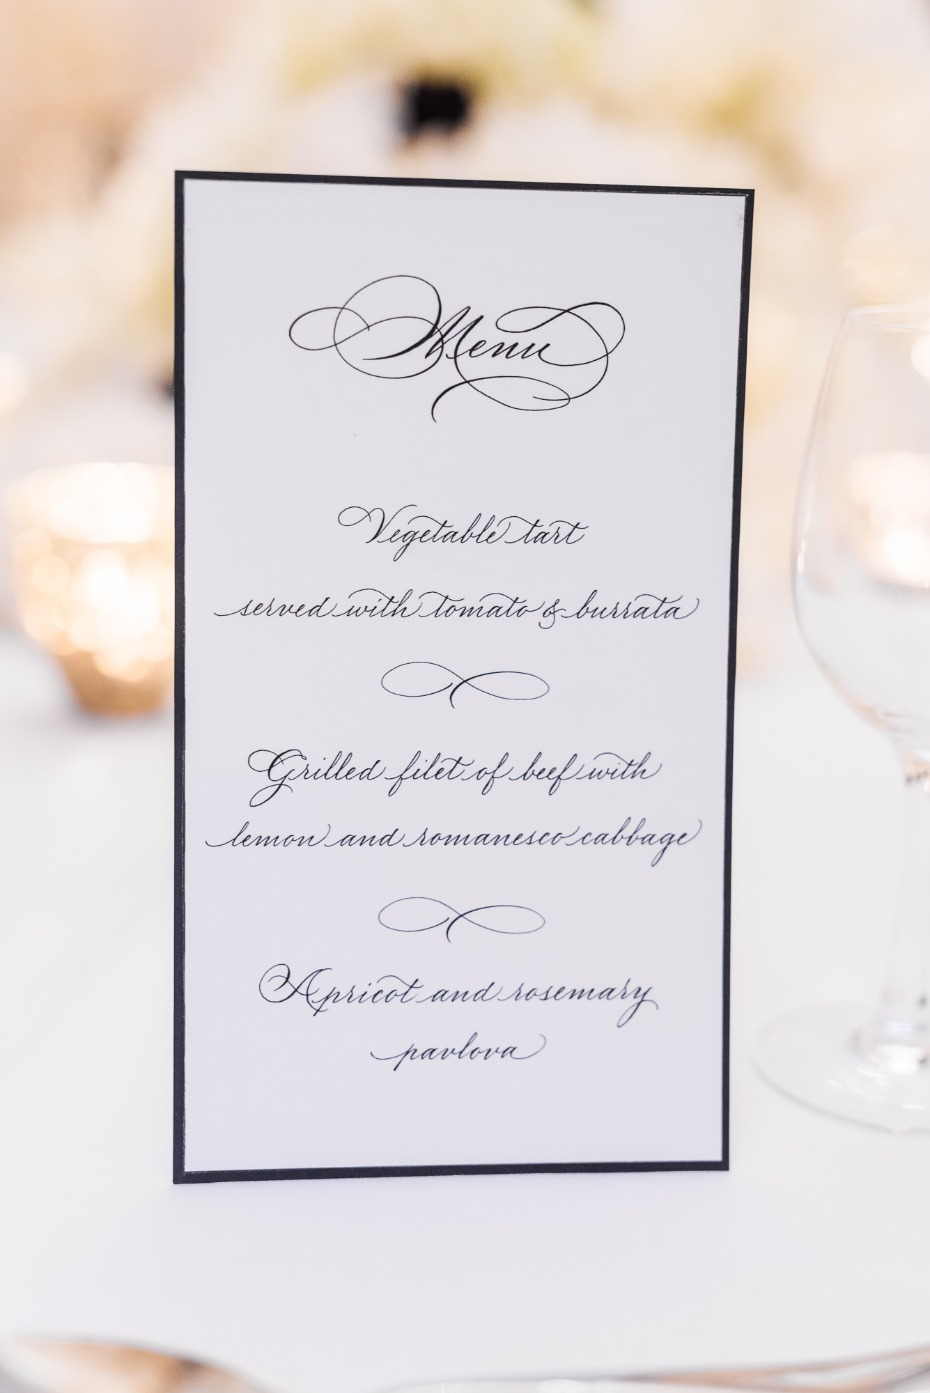 Classic menu for a Paris wedding